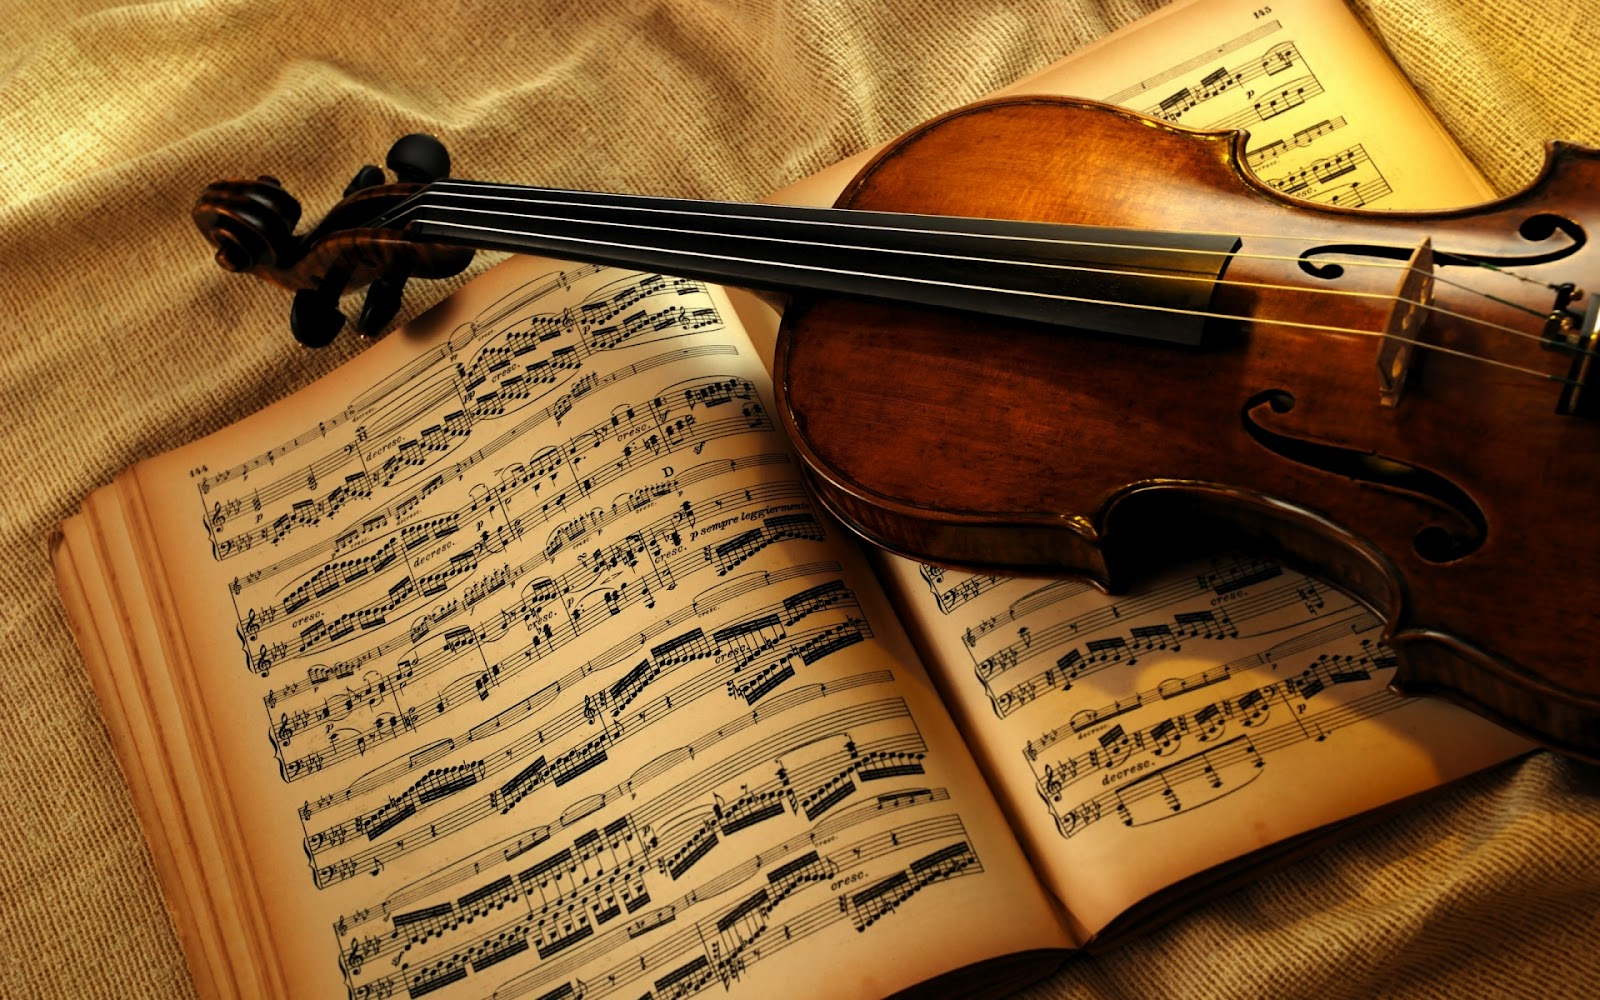 Violin vintage hd images widescreen cool wallpapers 1707